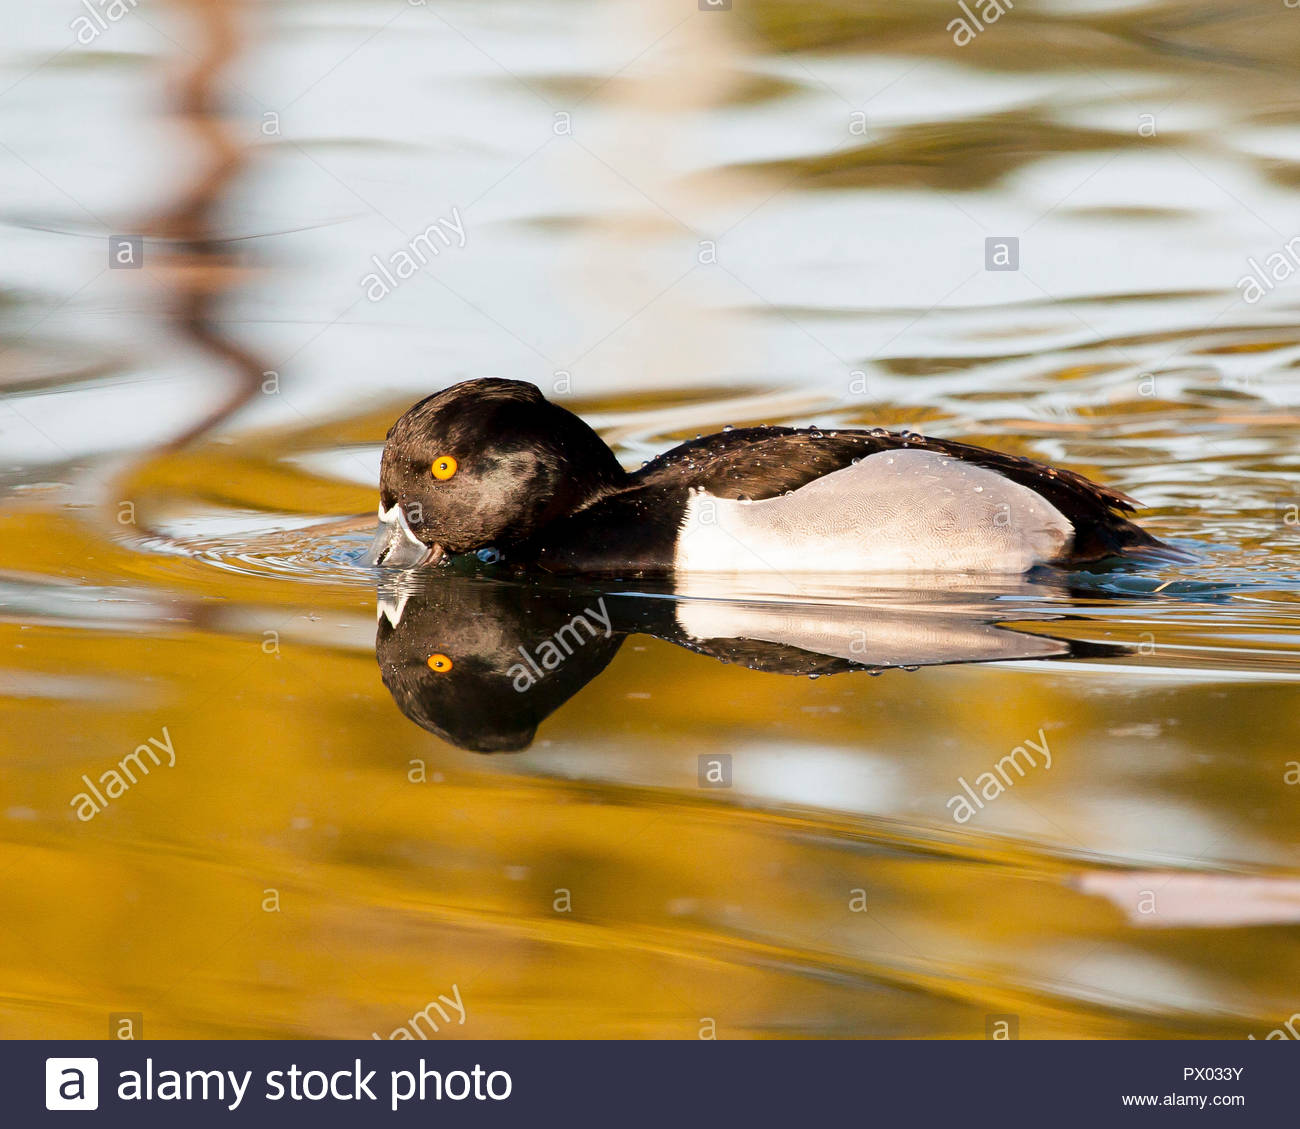 Male ring-necked duck and reflection showing water beading on its back. - Stock Image